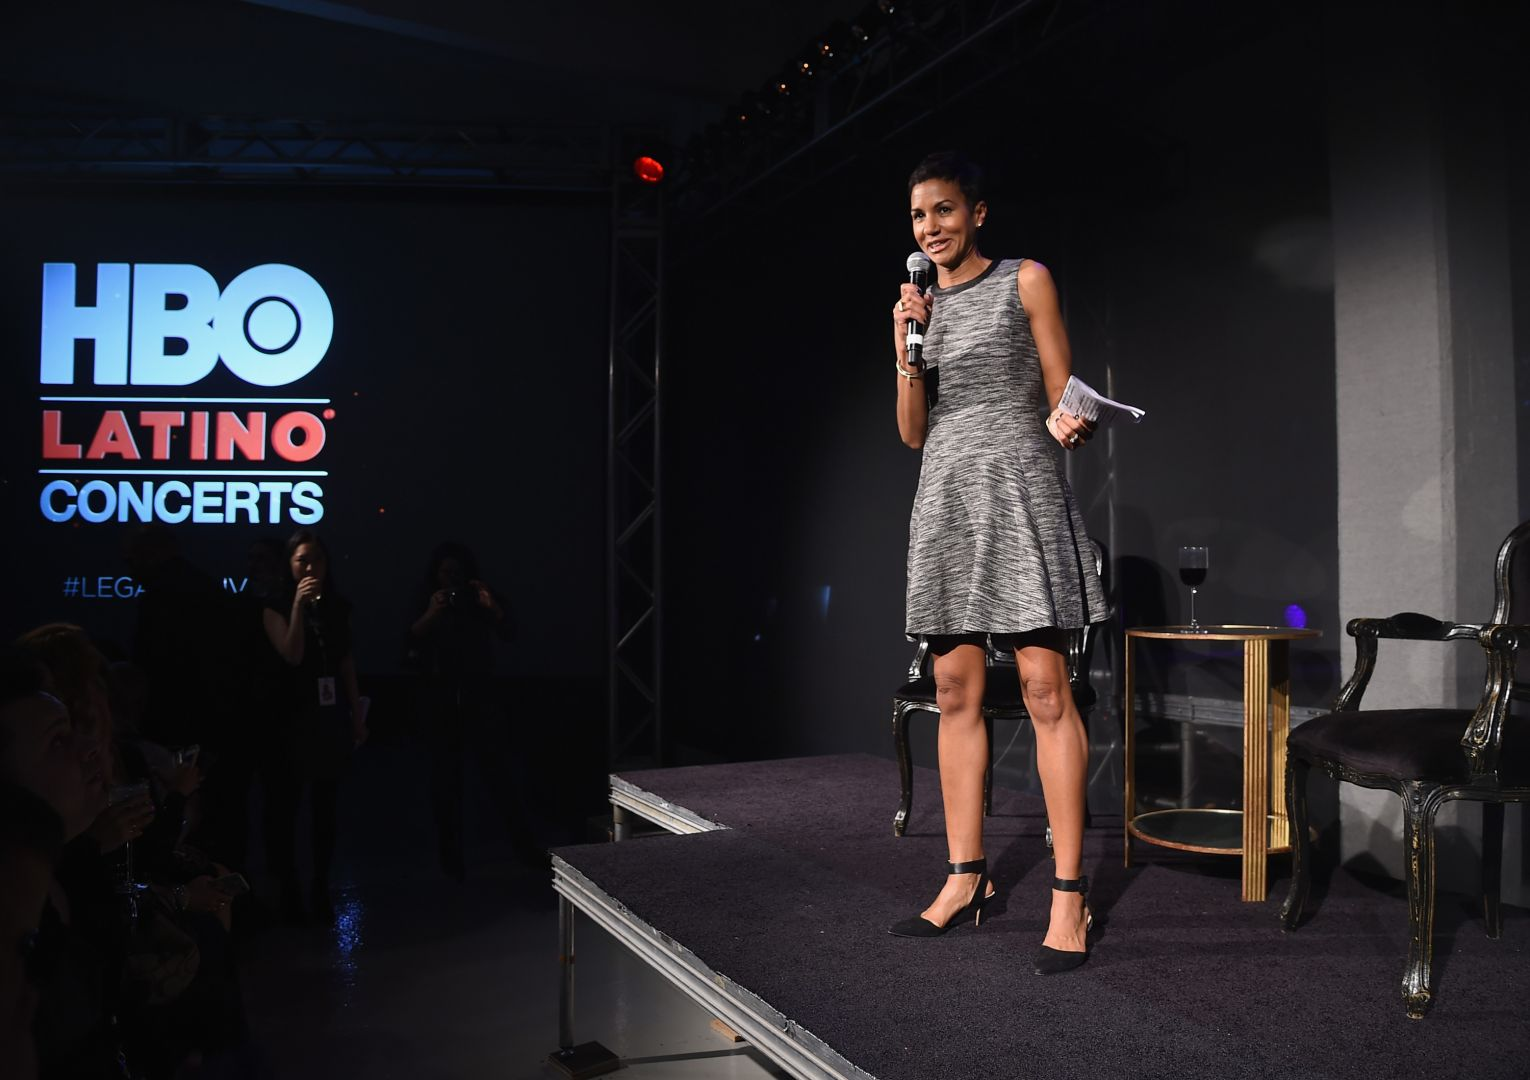 """HBO Latino multicultural marketing VP Jackie Gagne takes part in a Q&A during the HBO Latino red carpet premiere of the """"Camino Al Concierto and Legacy: De Lider a Leyenda"""" at Center 548 on April 7, 2015 in New York City. (Photo by Michael Loccisano/Getty Images for HBO)"""